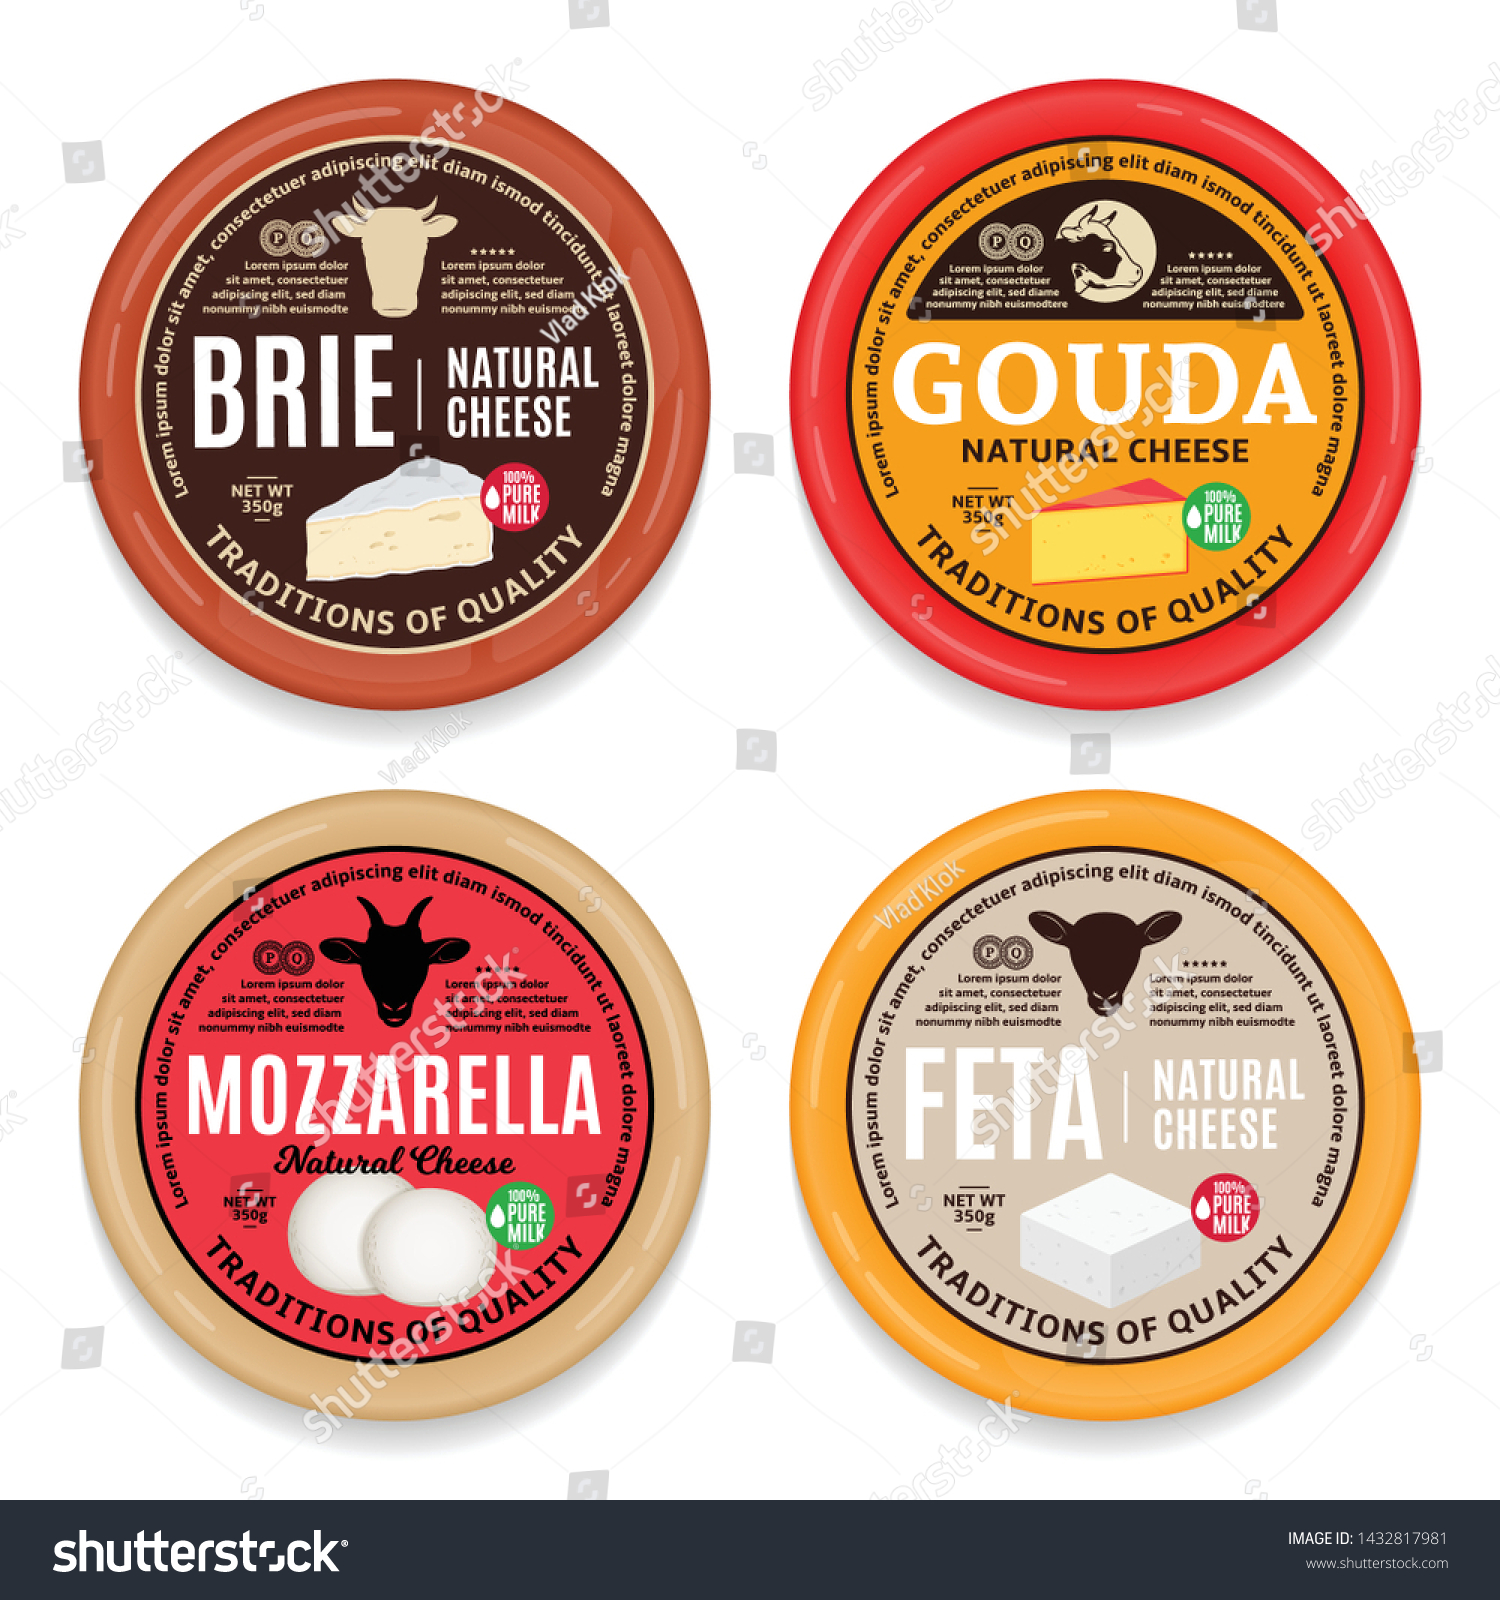 Vector Cheese Round Labels Packaging Design Stock Vector Royalty